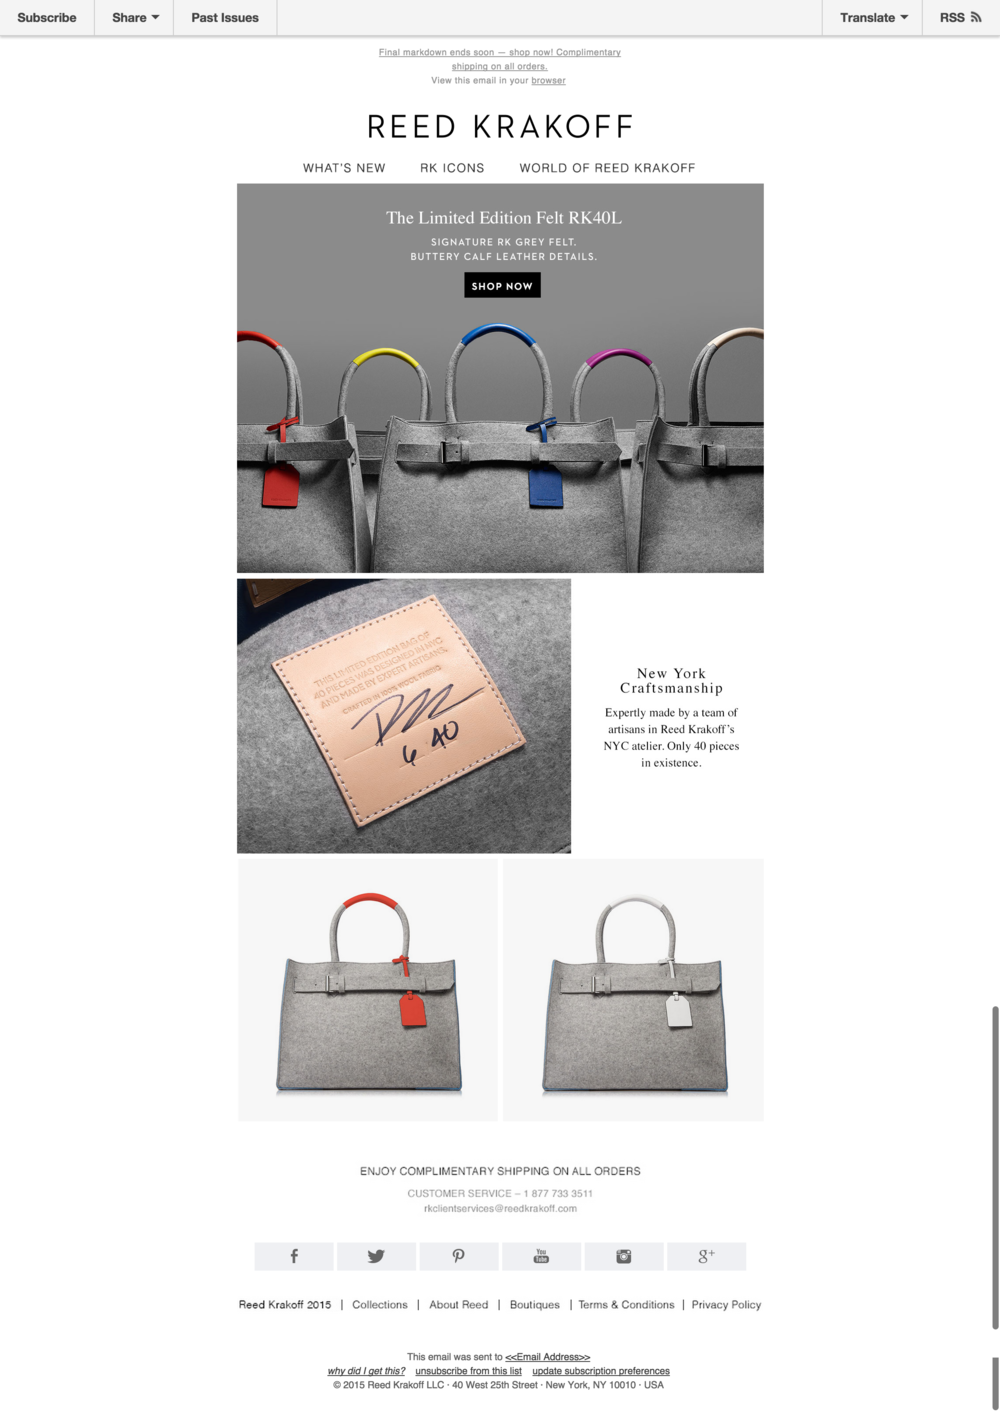 Made In NYC  The Limited Edition Felt RK40L   Reed Krakoff.png